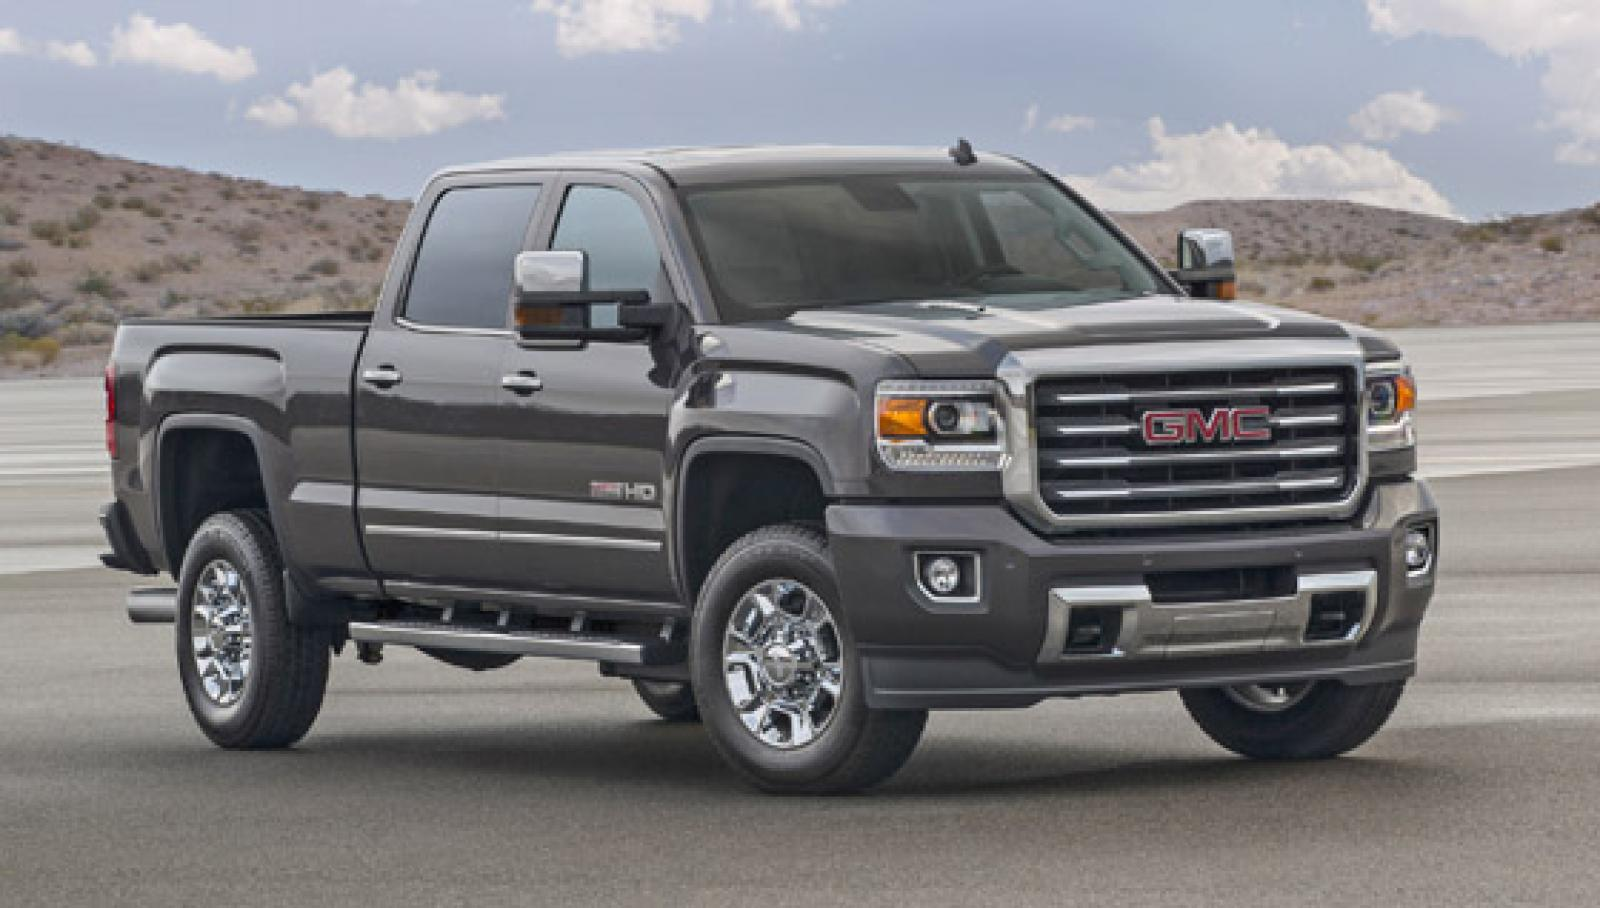 2015 gmc sierra 1500 information and photos zombiedrive. Black Bedroom Furniture Sets. Home Design Ideas